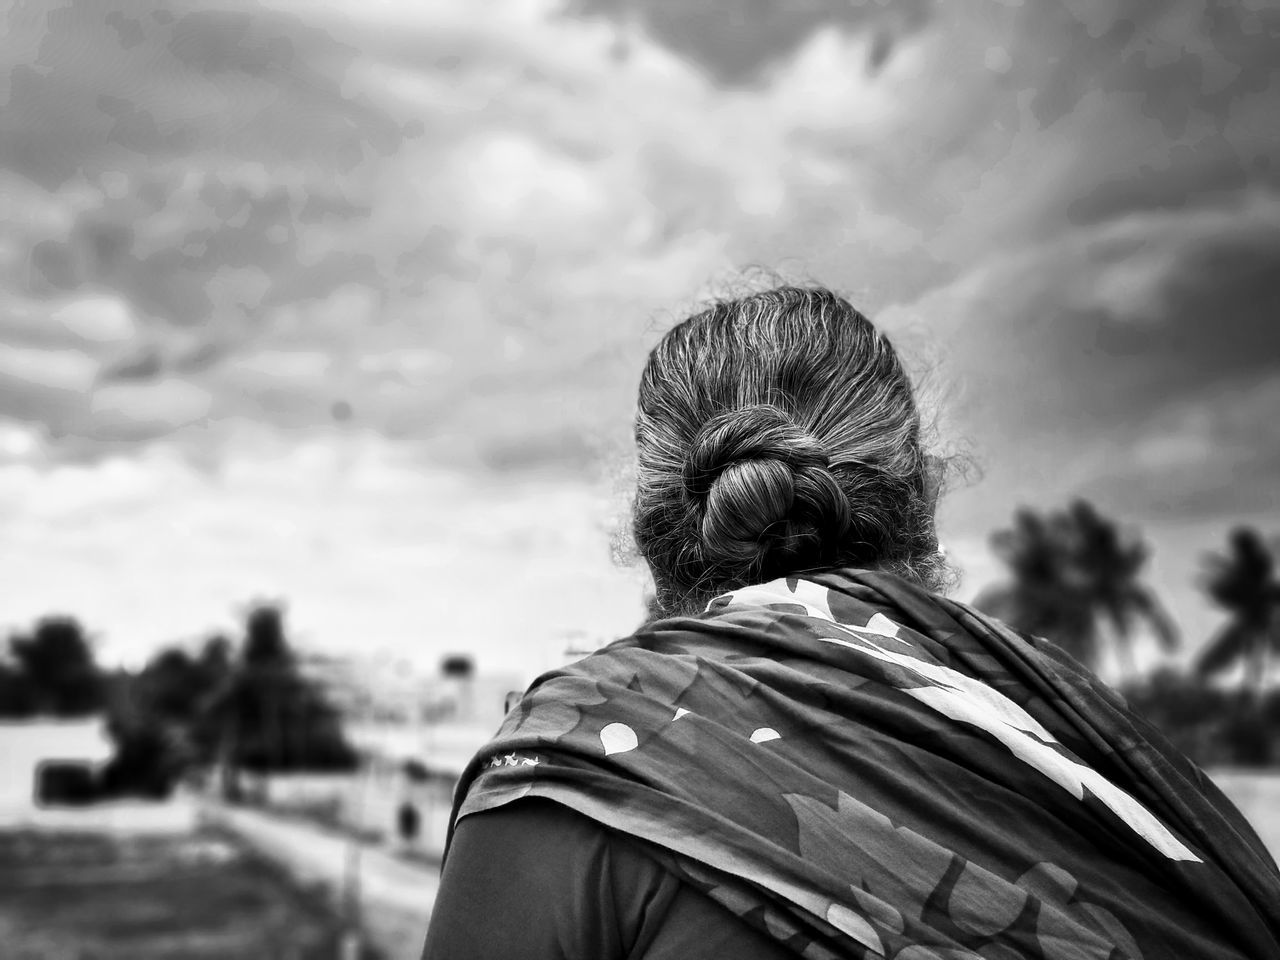 Rear View One Person Adults Only Only Men One Man Only Adult Sky People Headshot Cloud - Sky Outdoors Men Day Standing Real People Human Body Part Close-up Old-fashioned Hairstyle TheWeek On EyEem Oldlady Blackandwhite Monochrome Bnw Indian